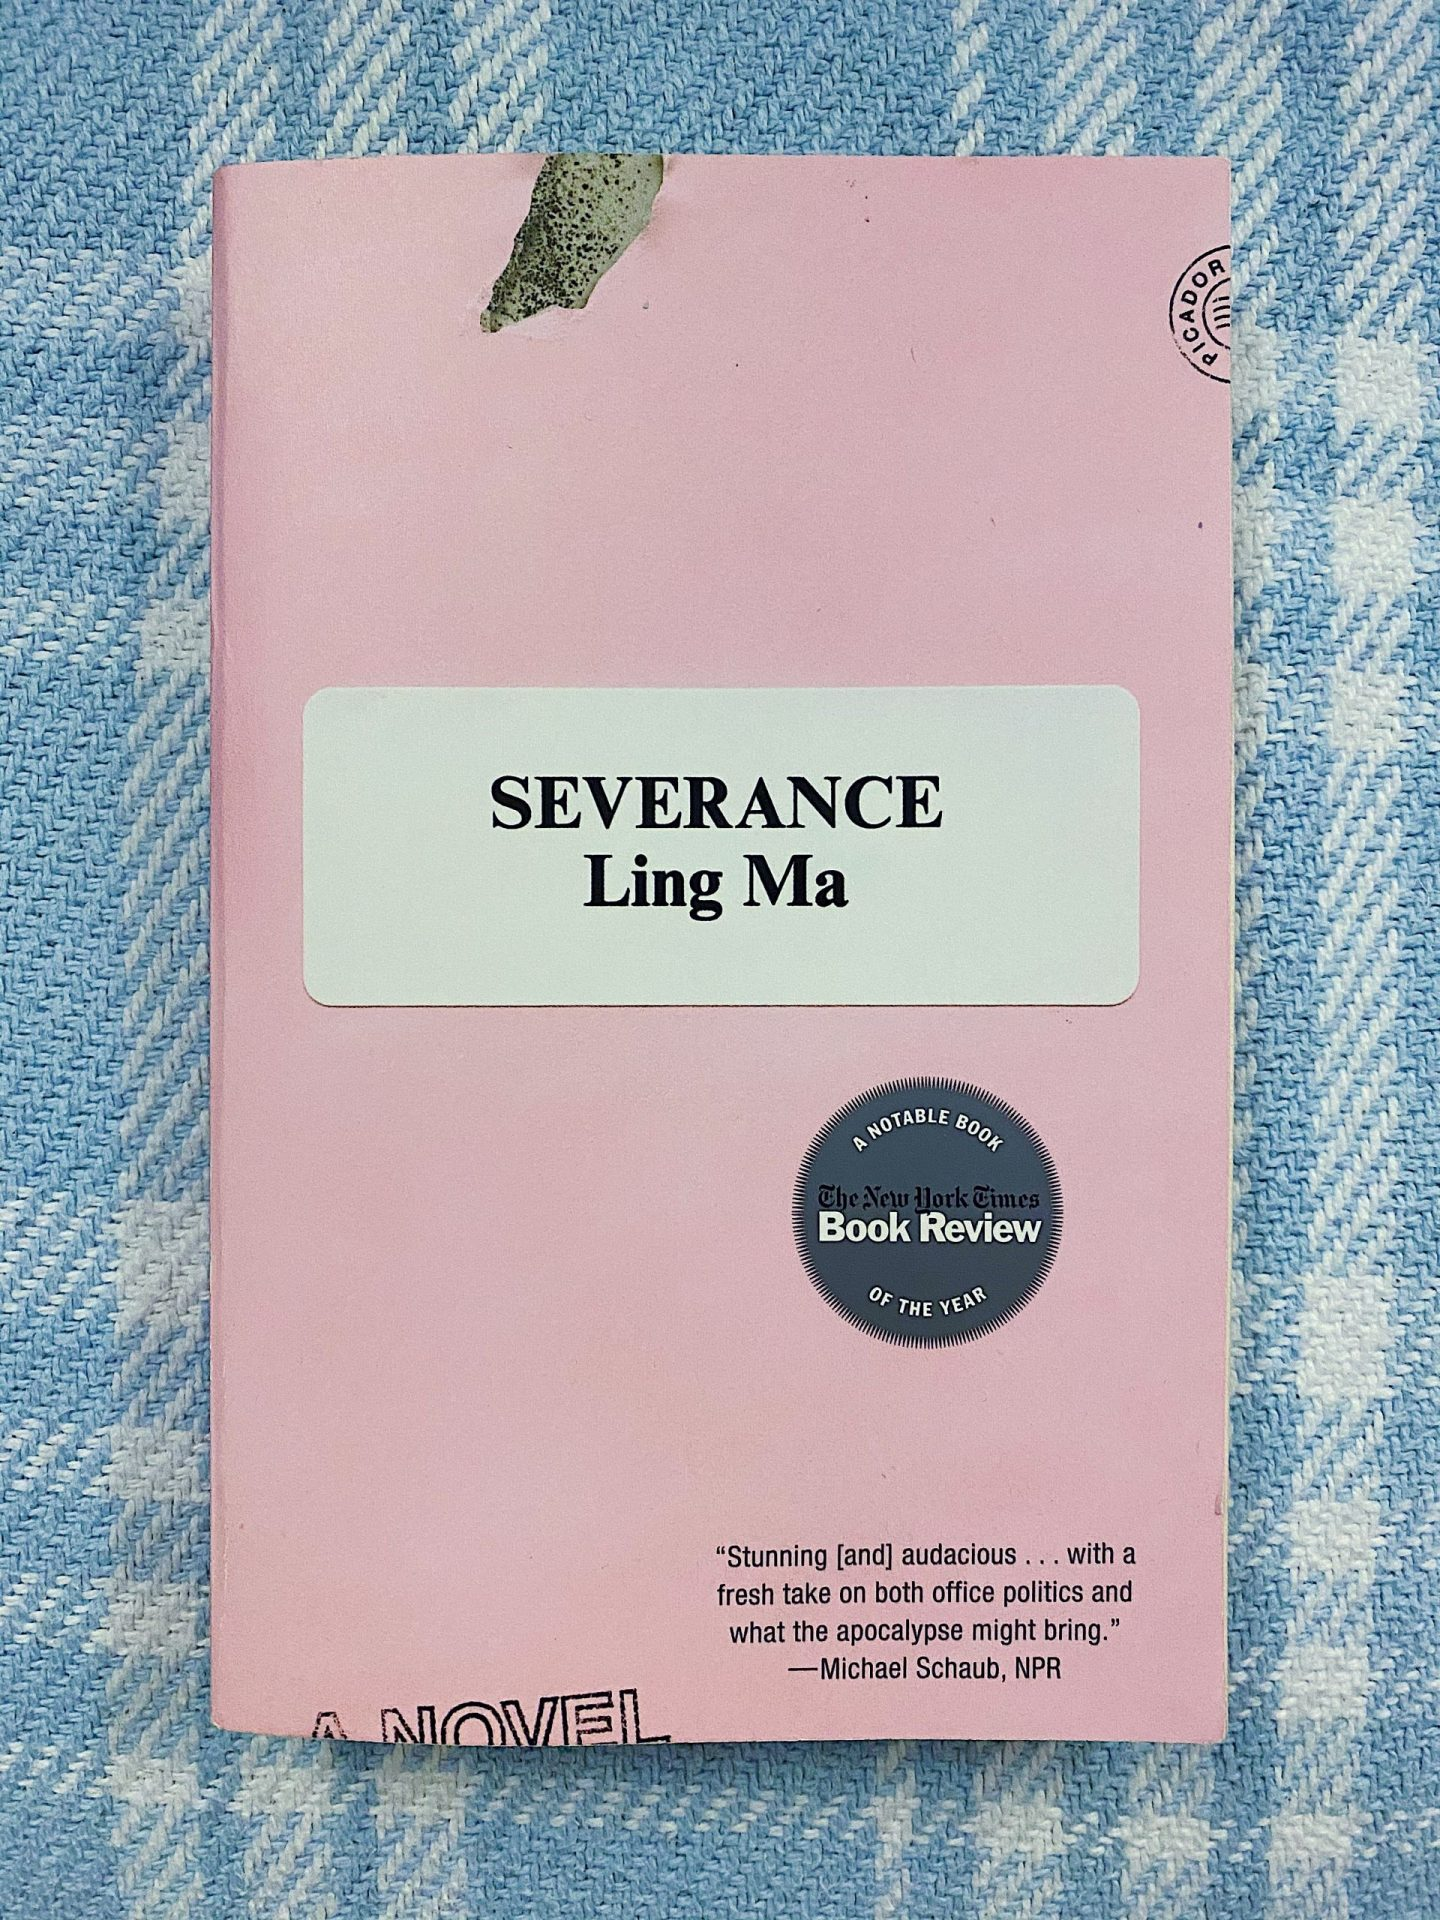 Severance by Ling Ma